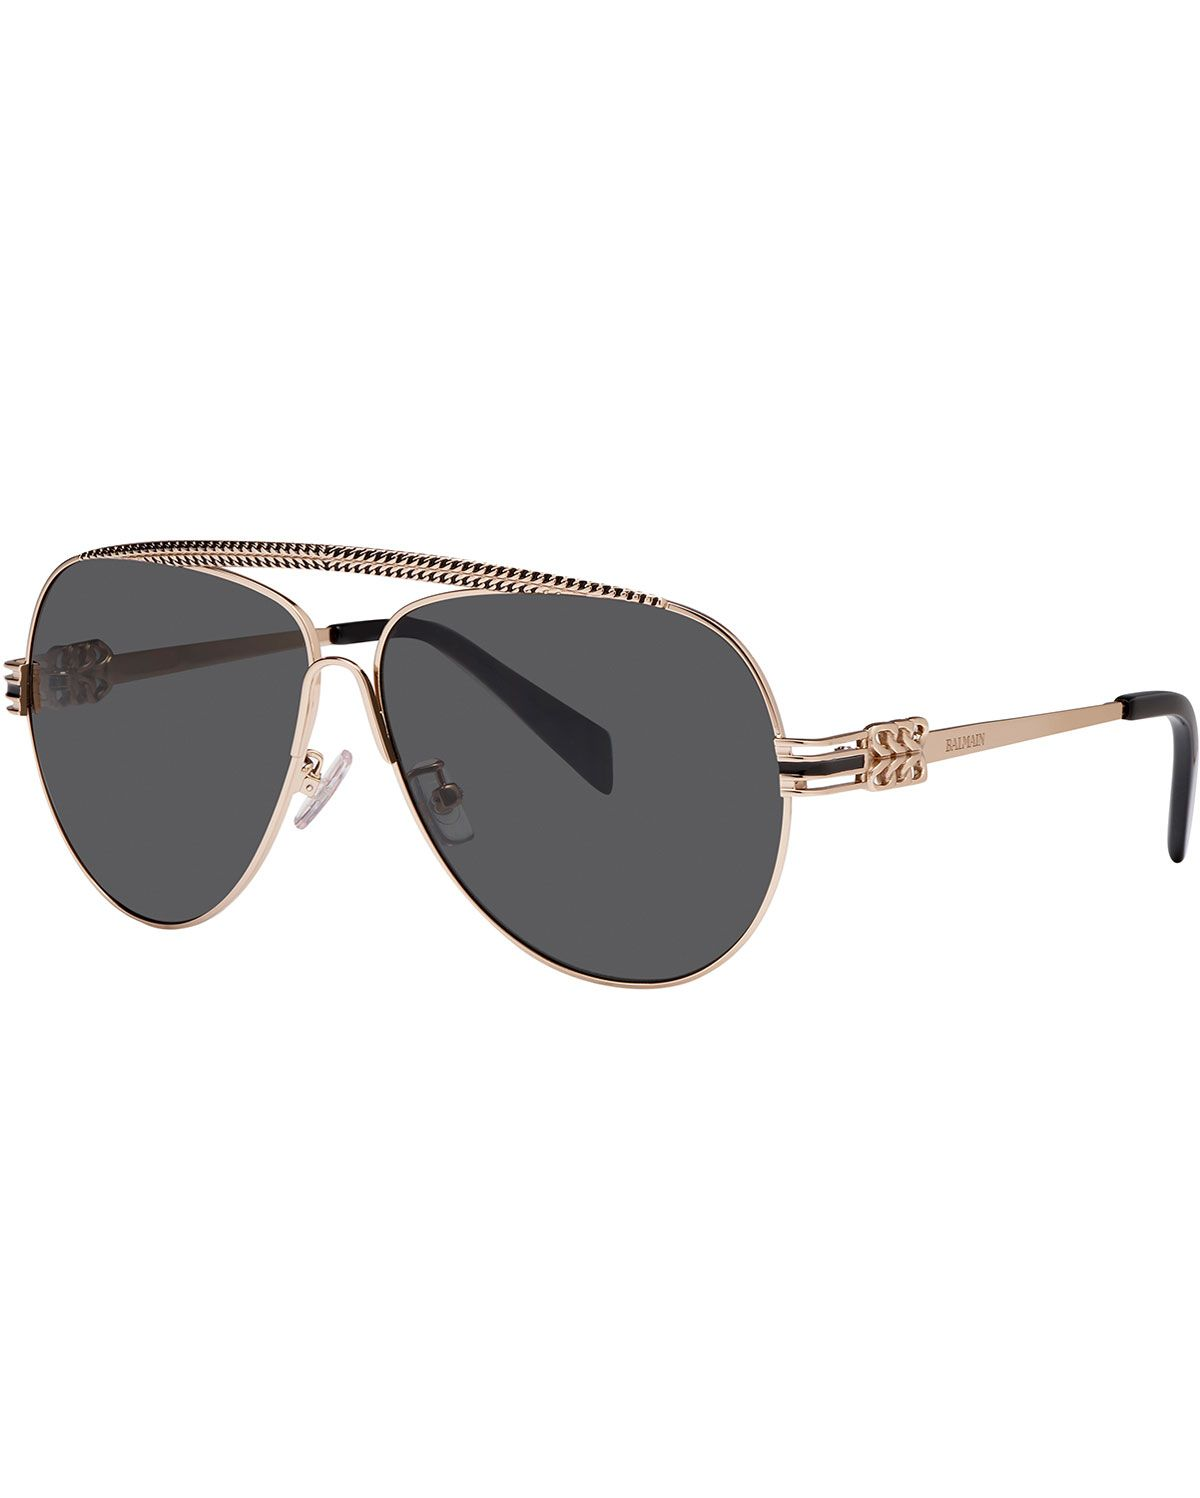 298613bf3c017 Balmain Studio Metal Chain-Rim Aviator Sunglasses